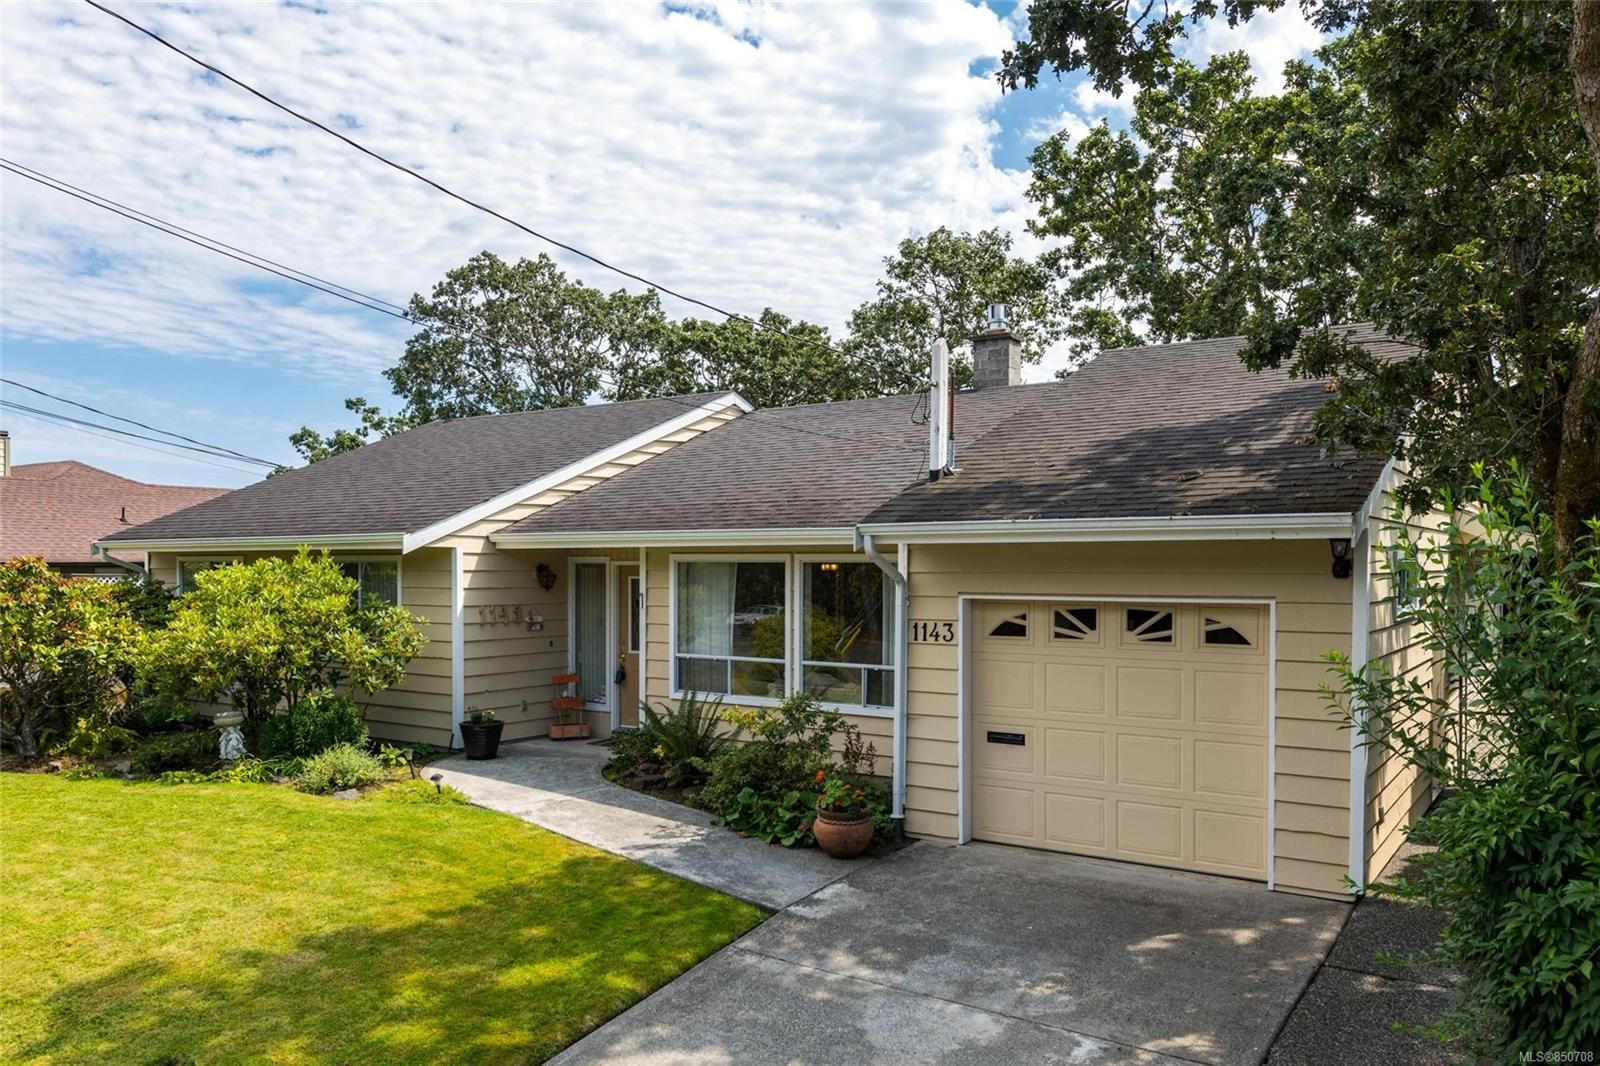 Main Photo: 1143 Nicholson St in : SE Lake Hill House for sale (Saanich East)  : MLS®# 850708